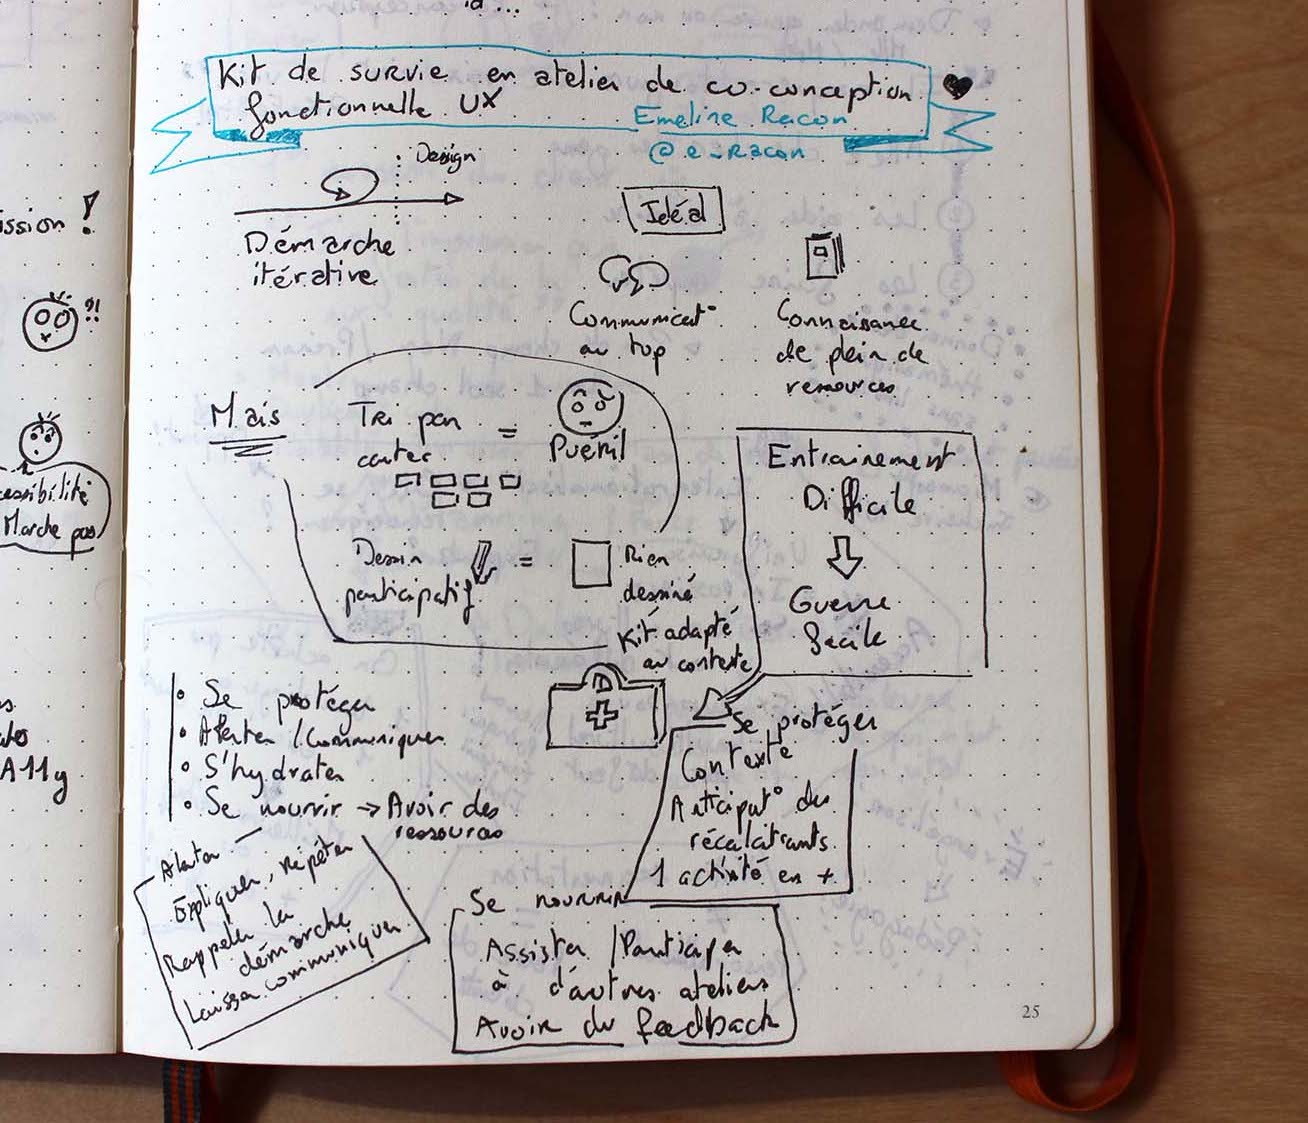 Sketchnote: Paris Web · Kit de survie en atelier de co-conception fonctionnelle UX